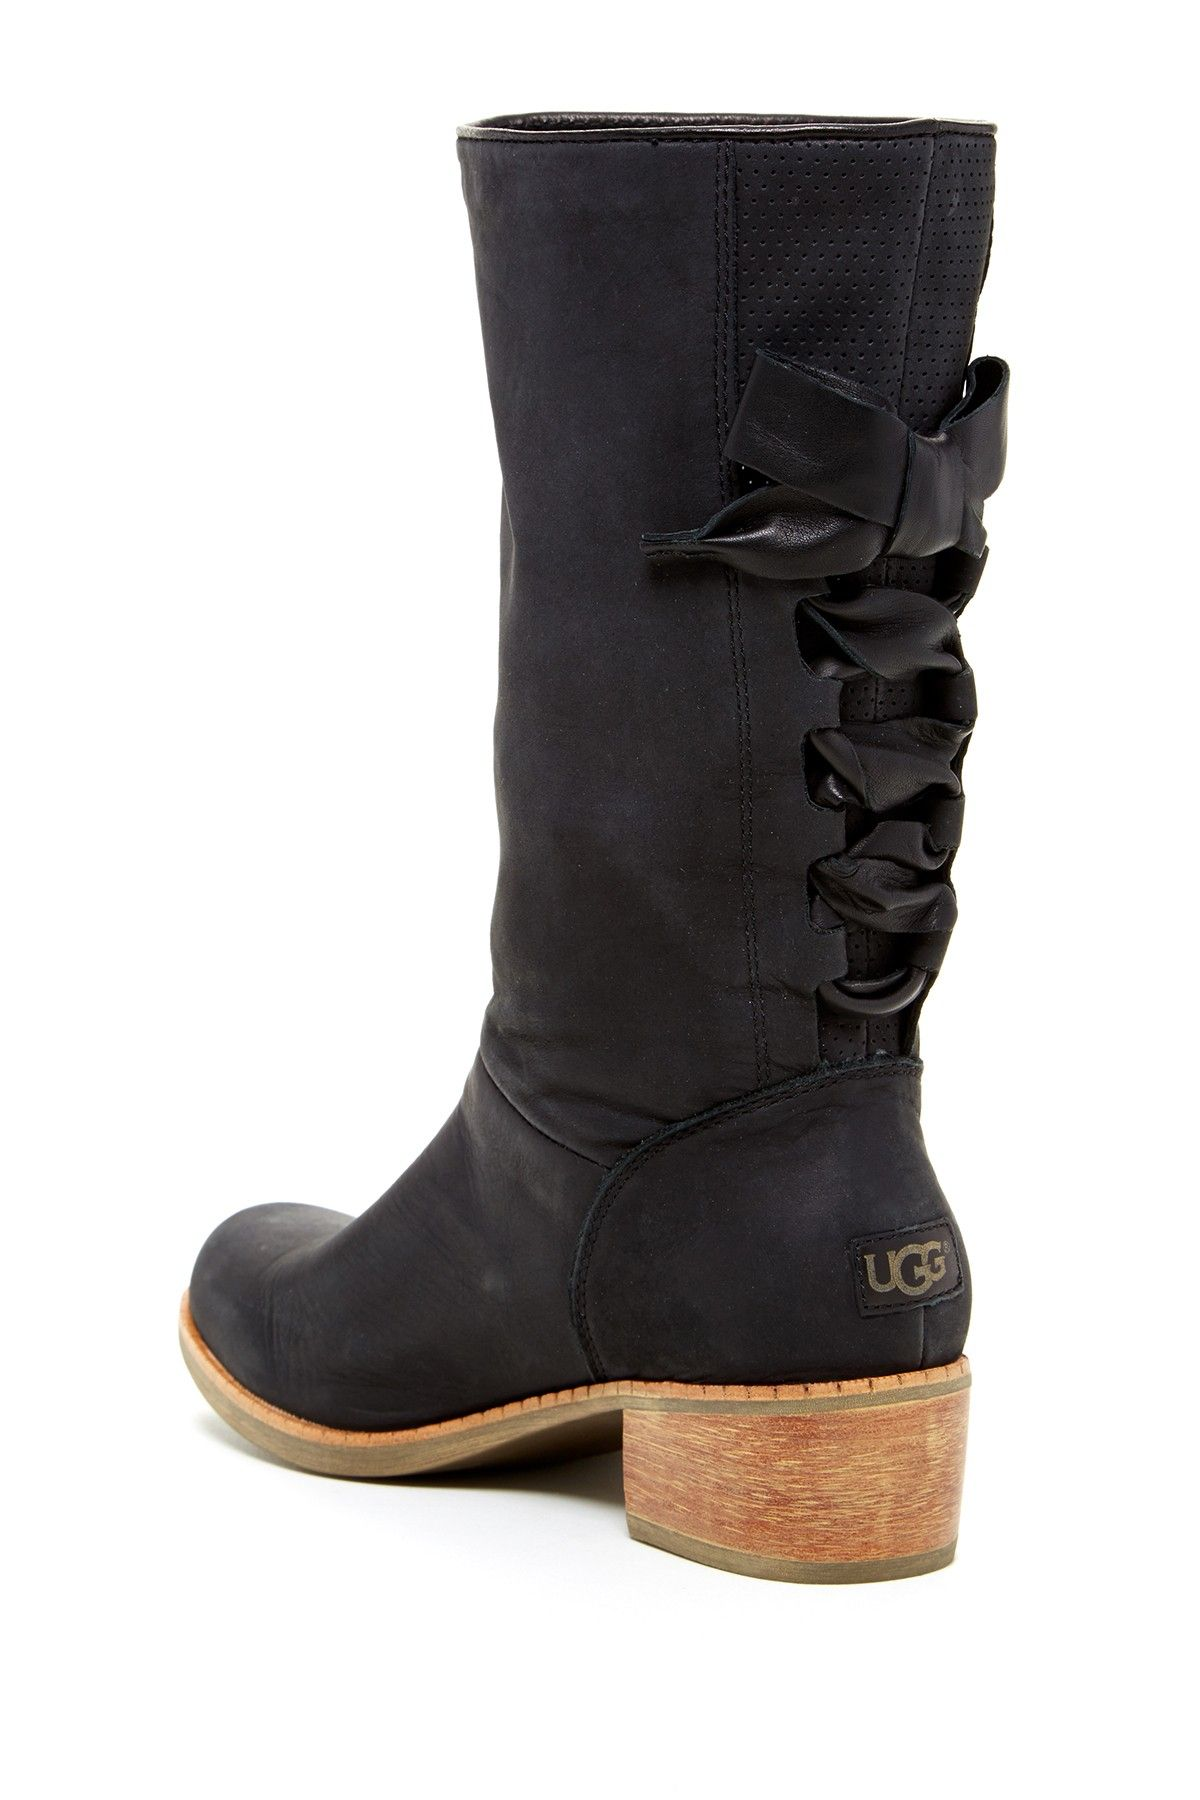 To acquire Boots ugg stylish australia picture trends